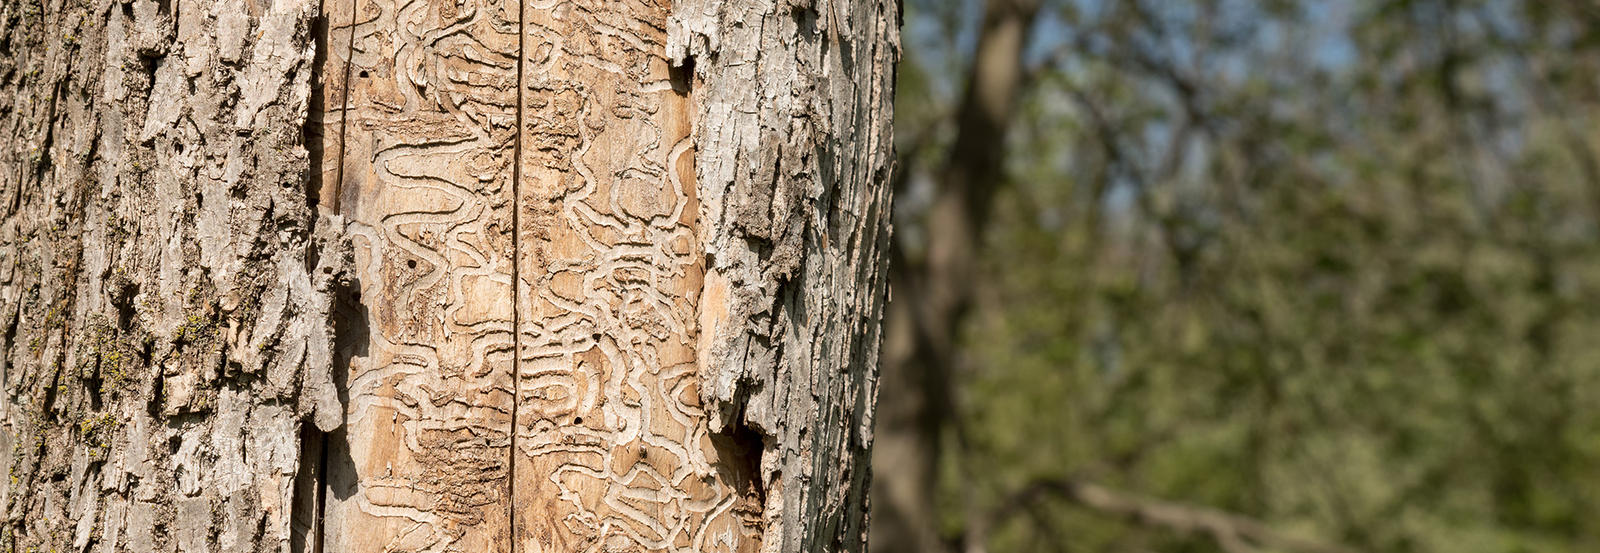 Signs of emerald ash borer bug on bark of tree